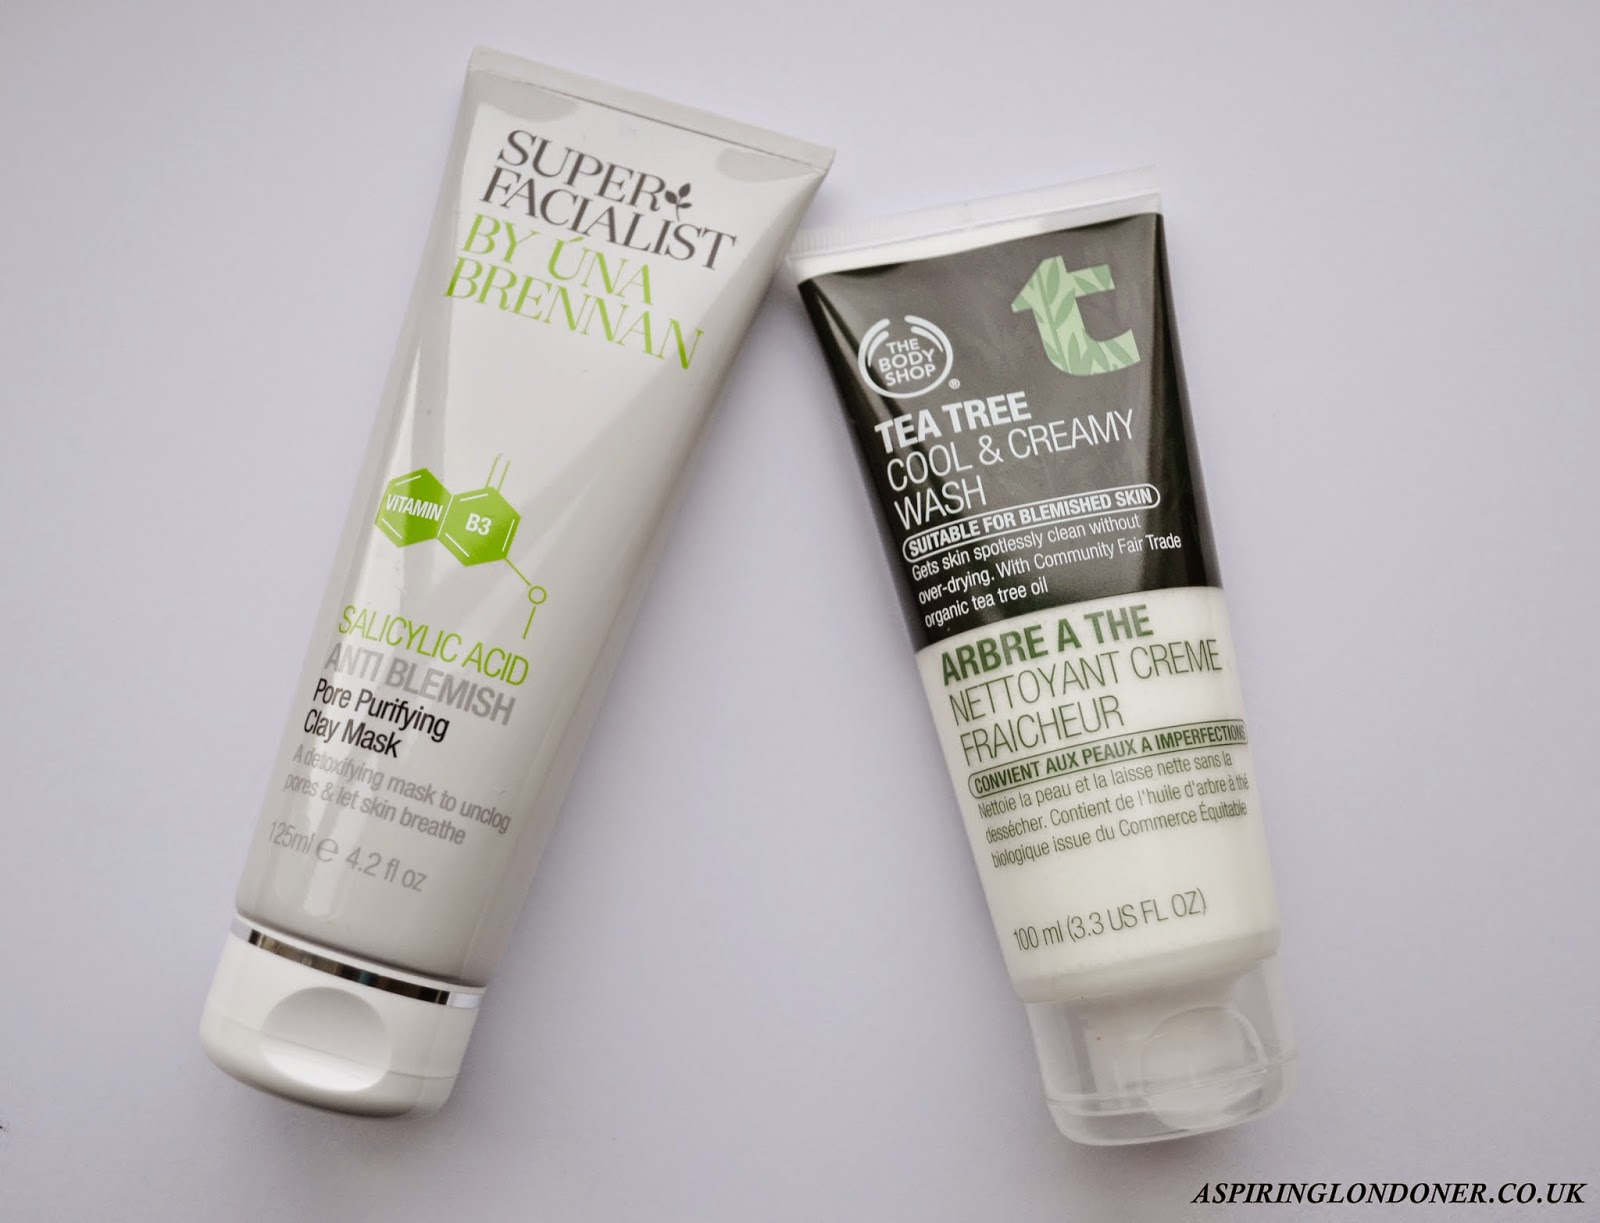 10 under £10 Drugstore Skincare ft. Superfacialist & The Body Shop Review - Aspiring Londoner